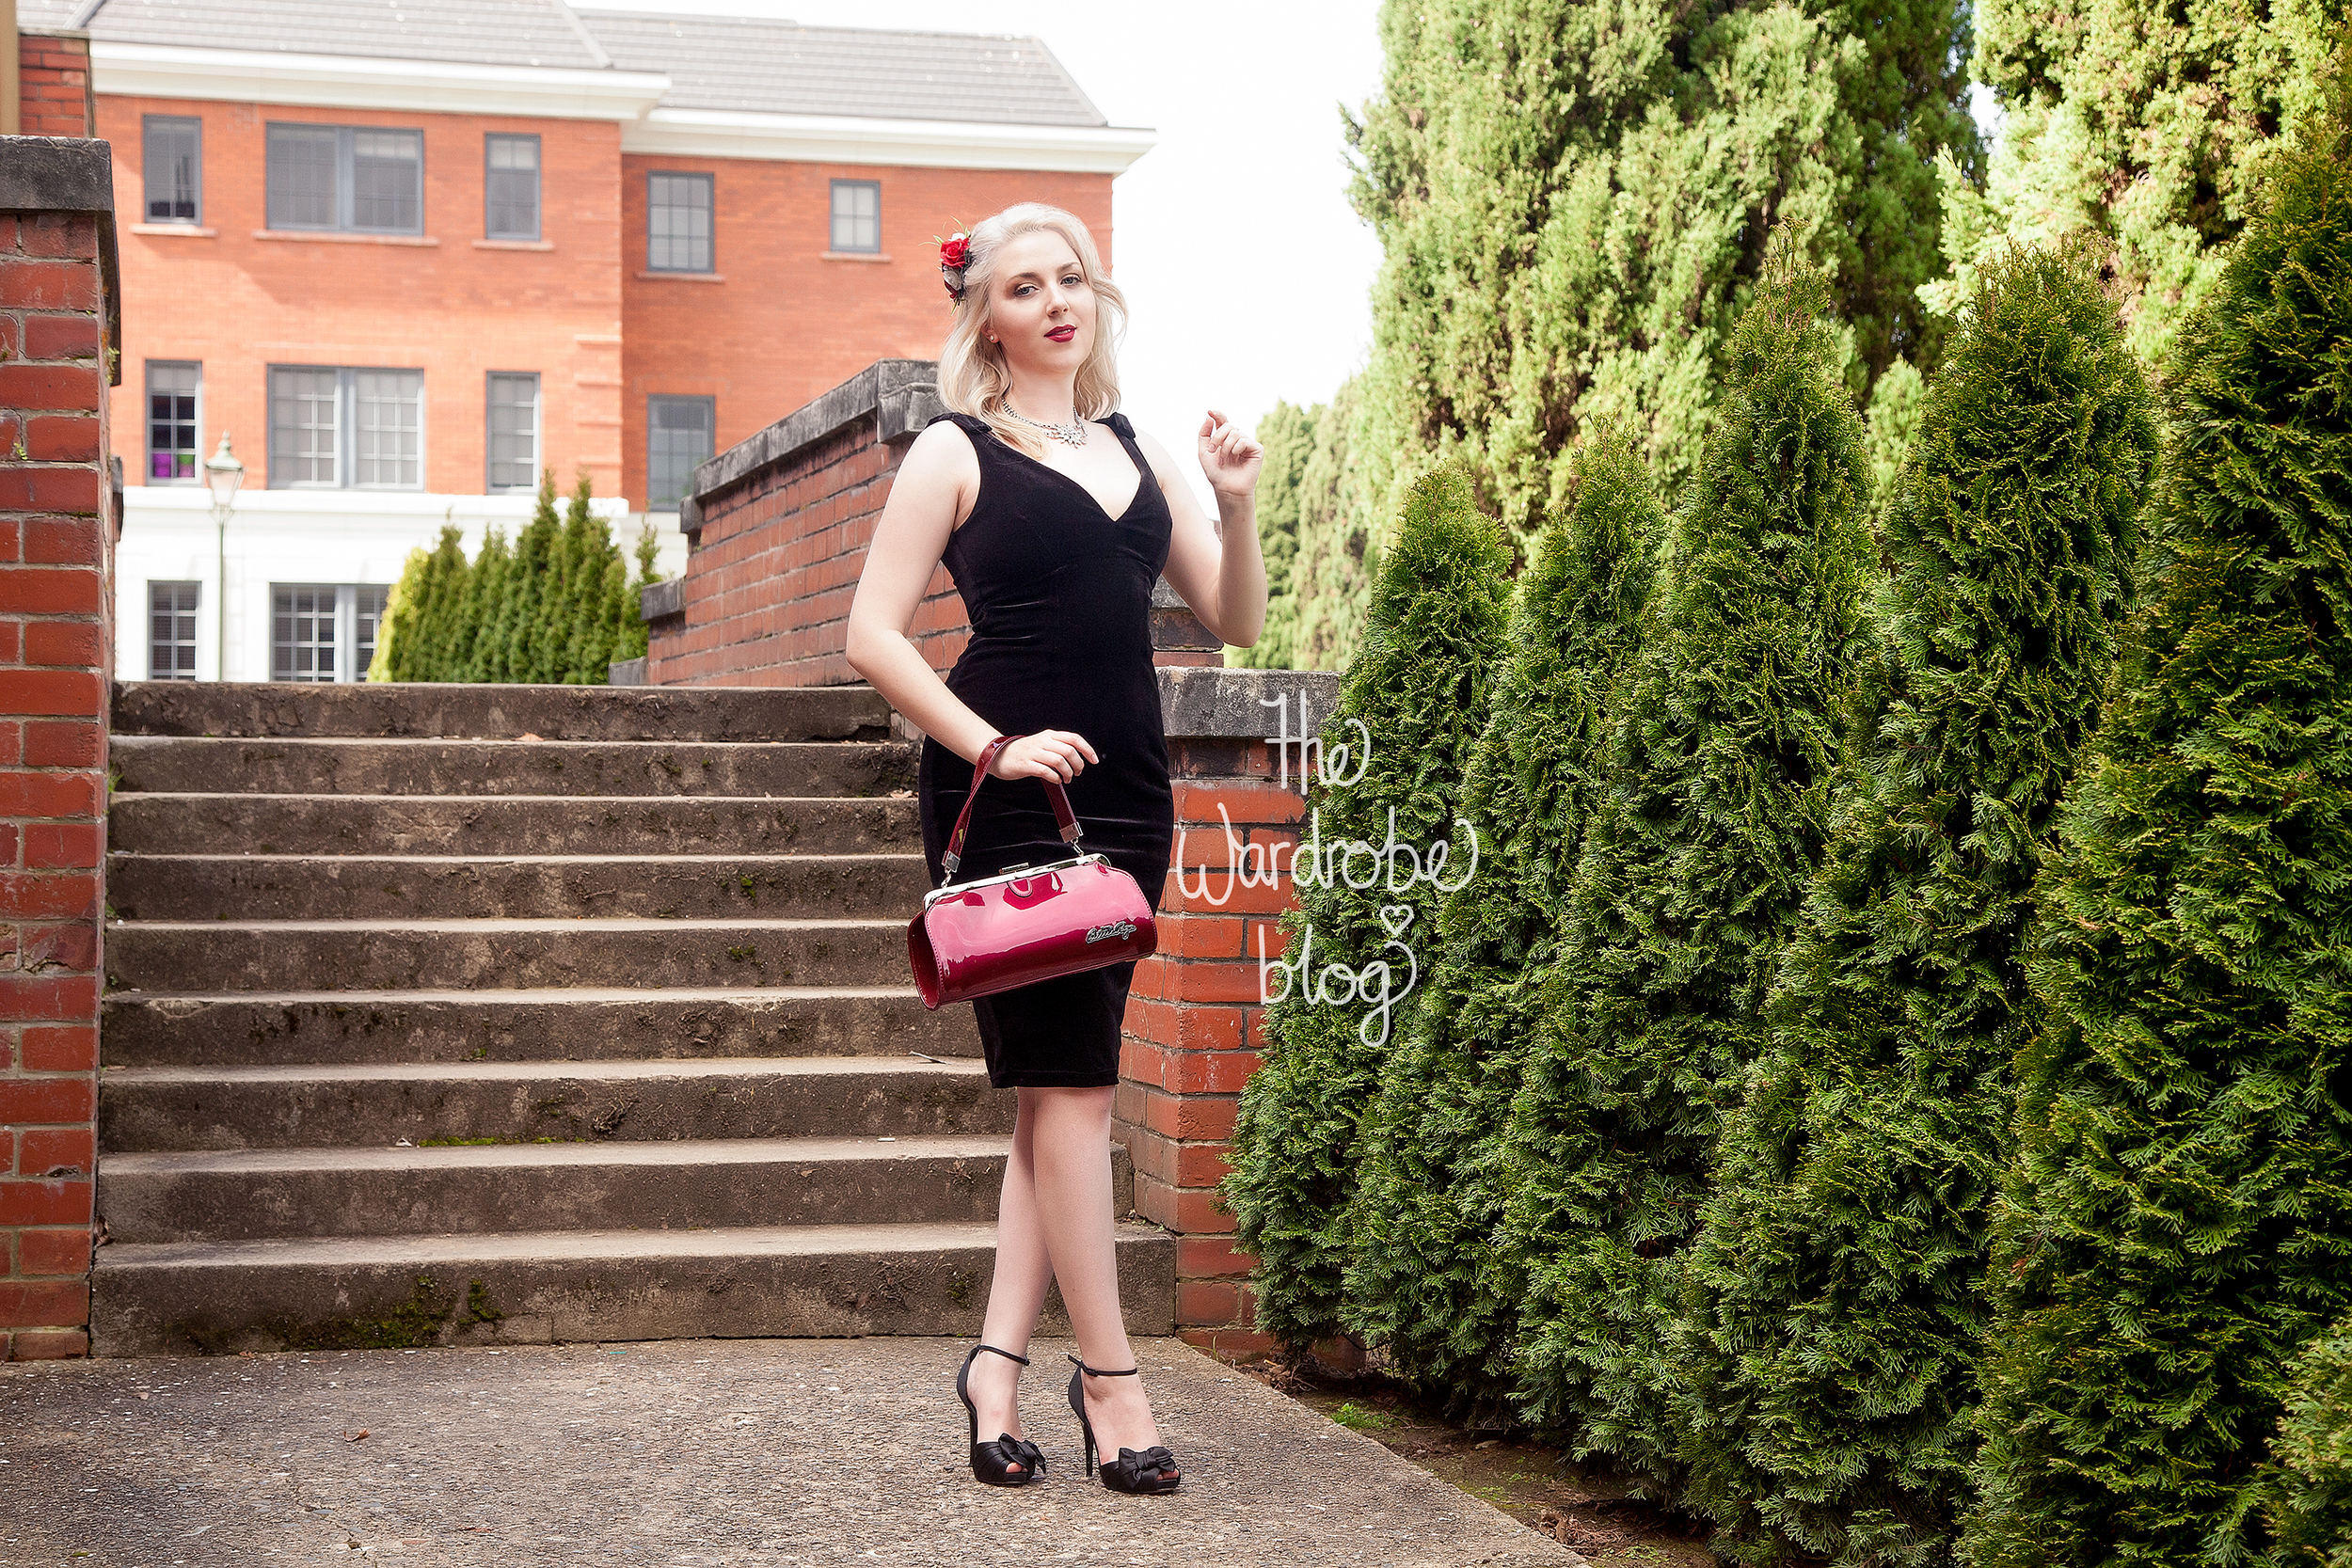 Laura Byrnes Gilda Dress in Black Velvet, Hair piece by Pop That Cassette, and Bettie Page Cover Girl Purse in Maroon by Sourpuss, both available at Rita Sue. Necklace is vintage, and shoes are from Novo shoes.